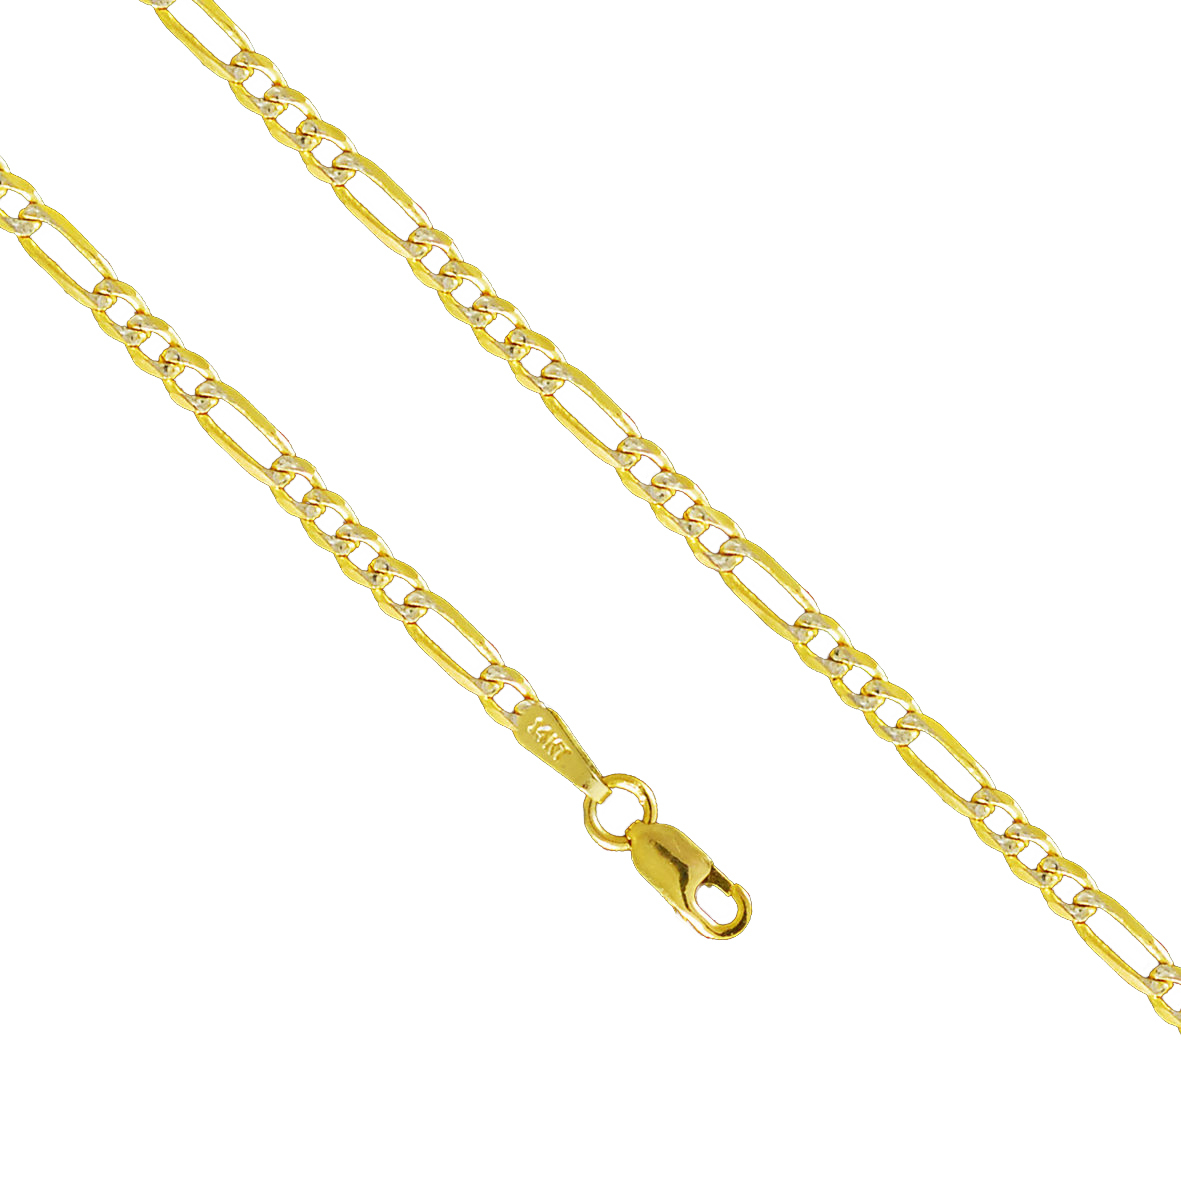 14K Yellow Gold 2.0mm Figaro Diamond Cut Pave Necklace Link Lobster Clasp (22 Inches) by Paradise Jewelers